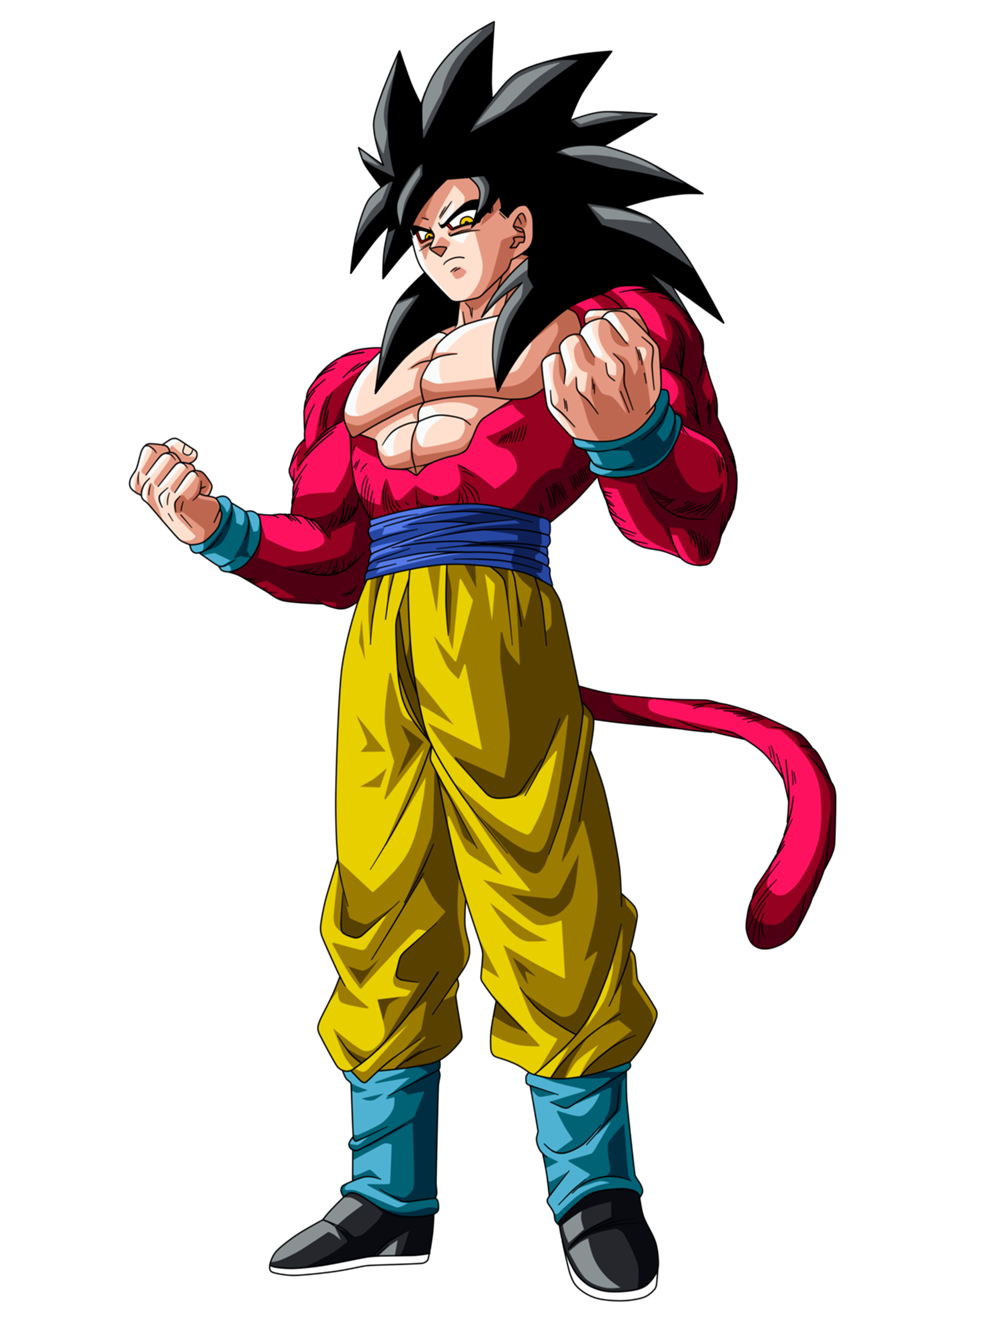 Dragon ball z dating site in Melbourne